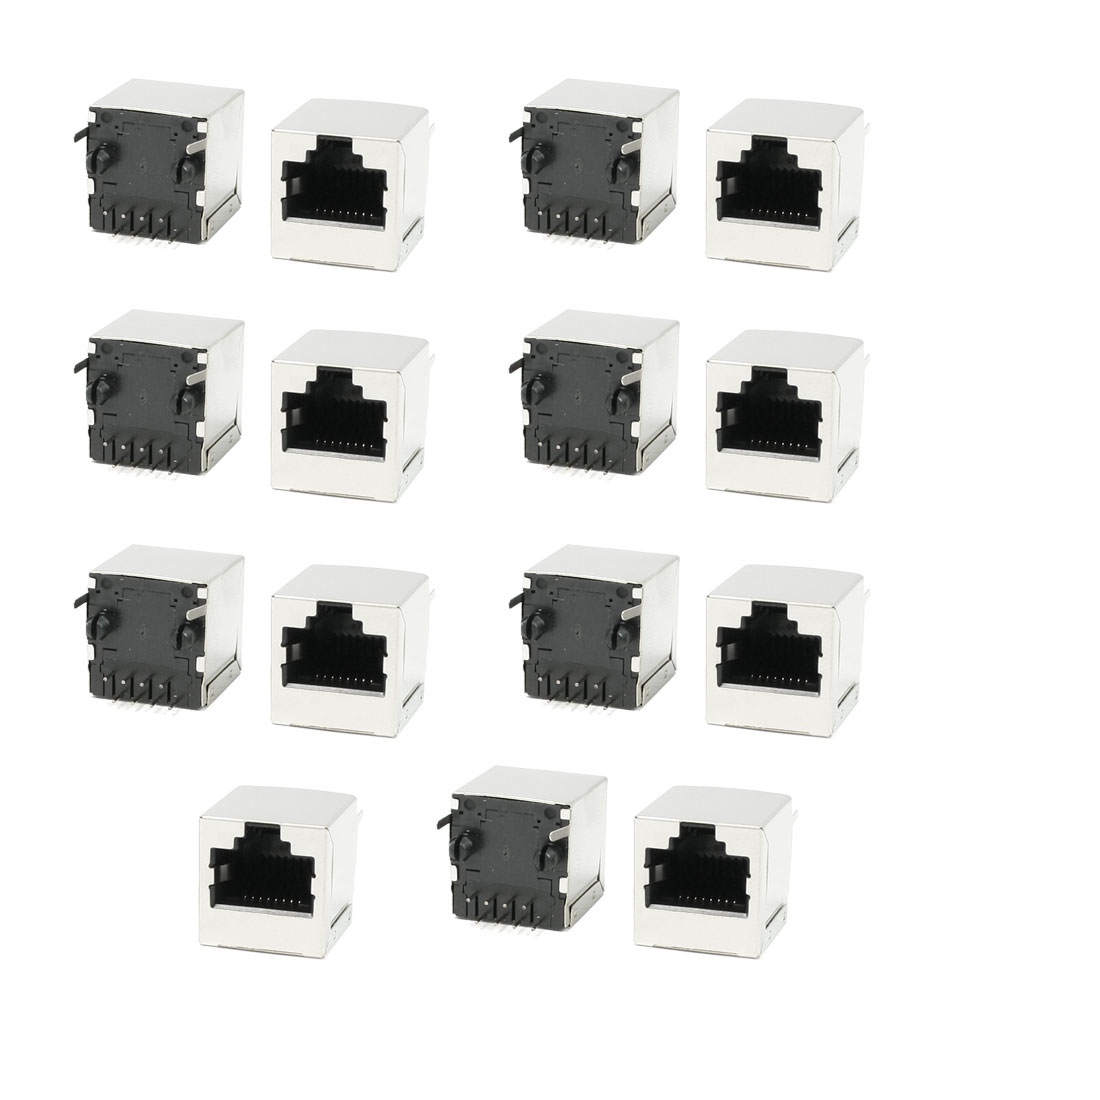 15 Pieces 8Pin RJ45 Jack Vertical Ports Sockets 16mm x 15.5mm x 16mm